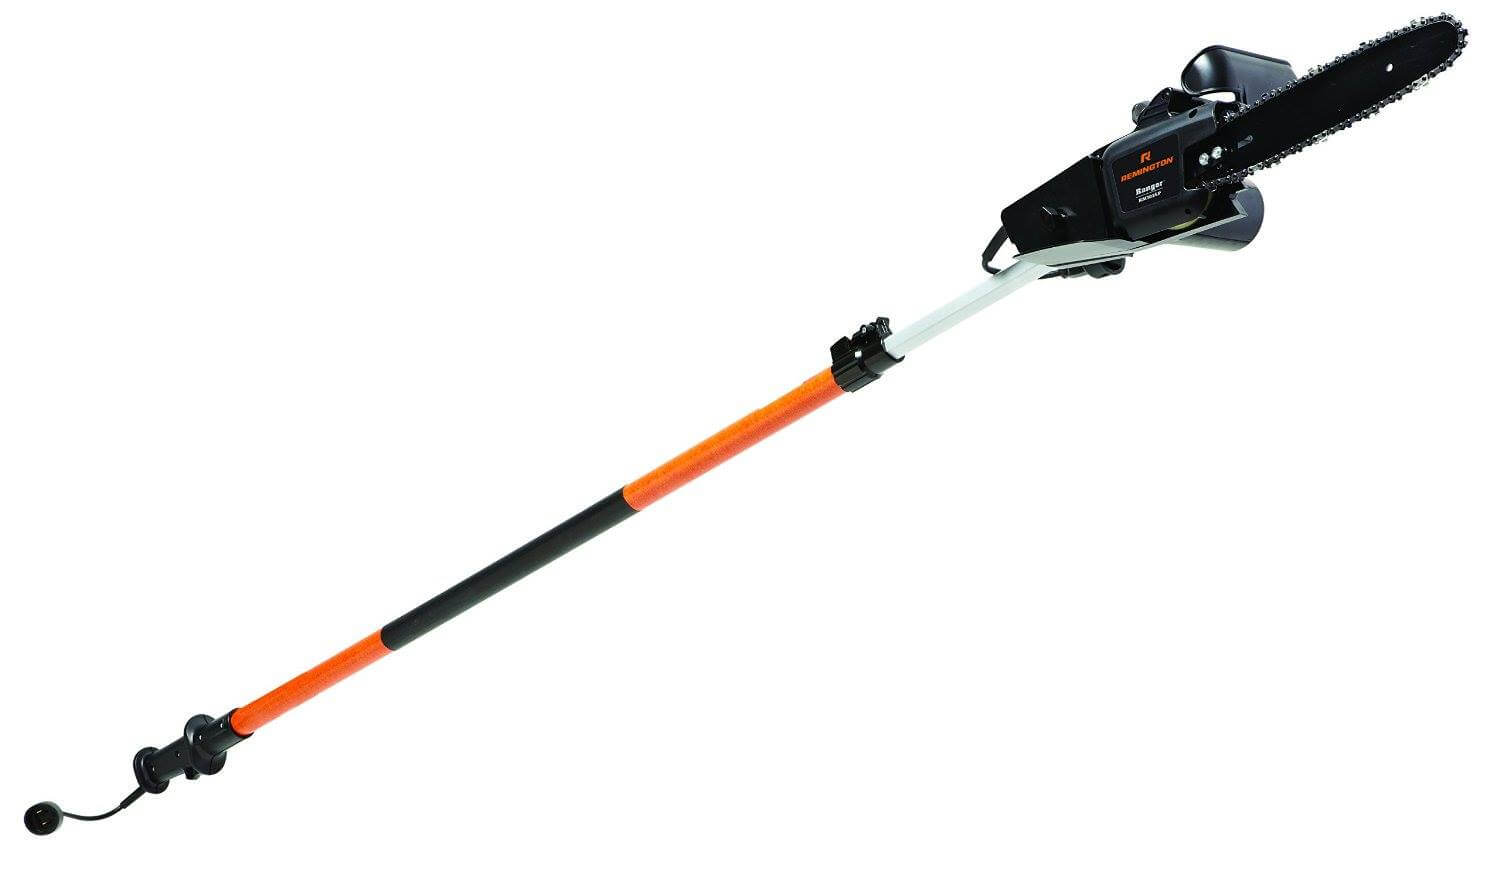 Remington RM1025P Ranger 10Inch 8Amp 2-1 Electric ChainSaw